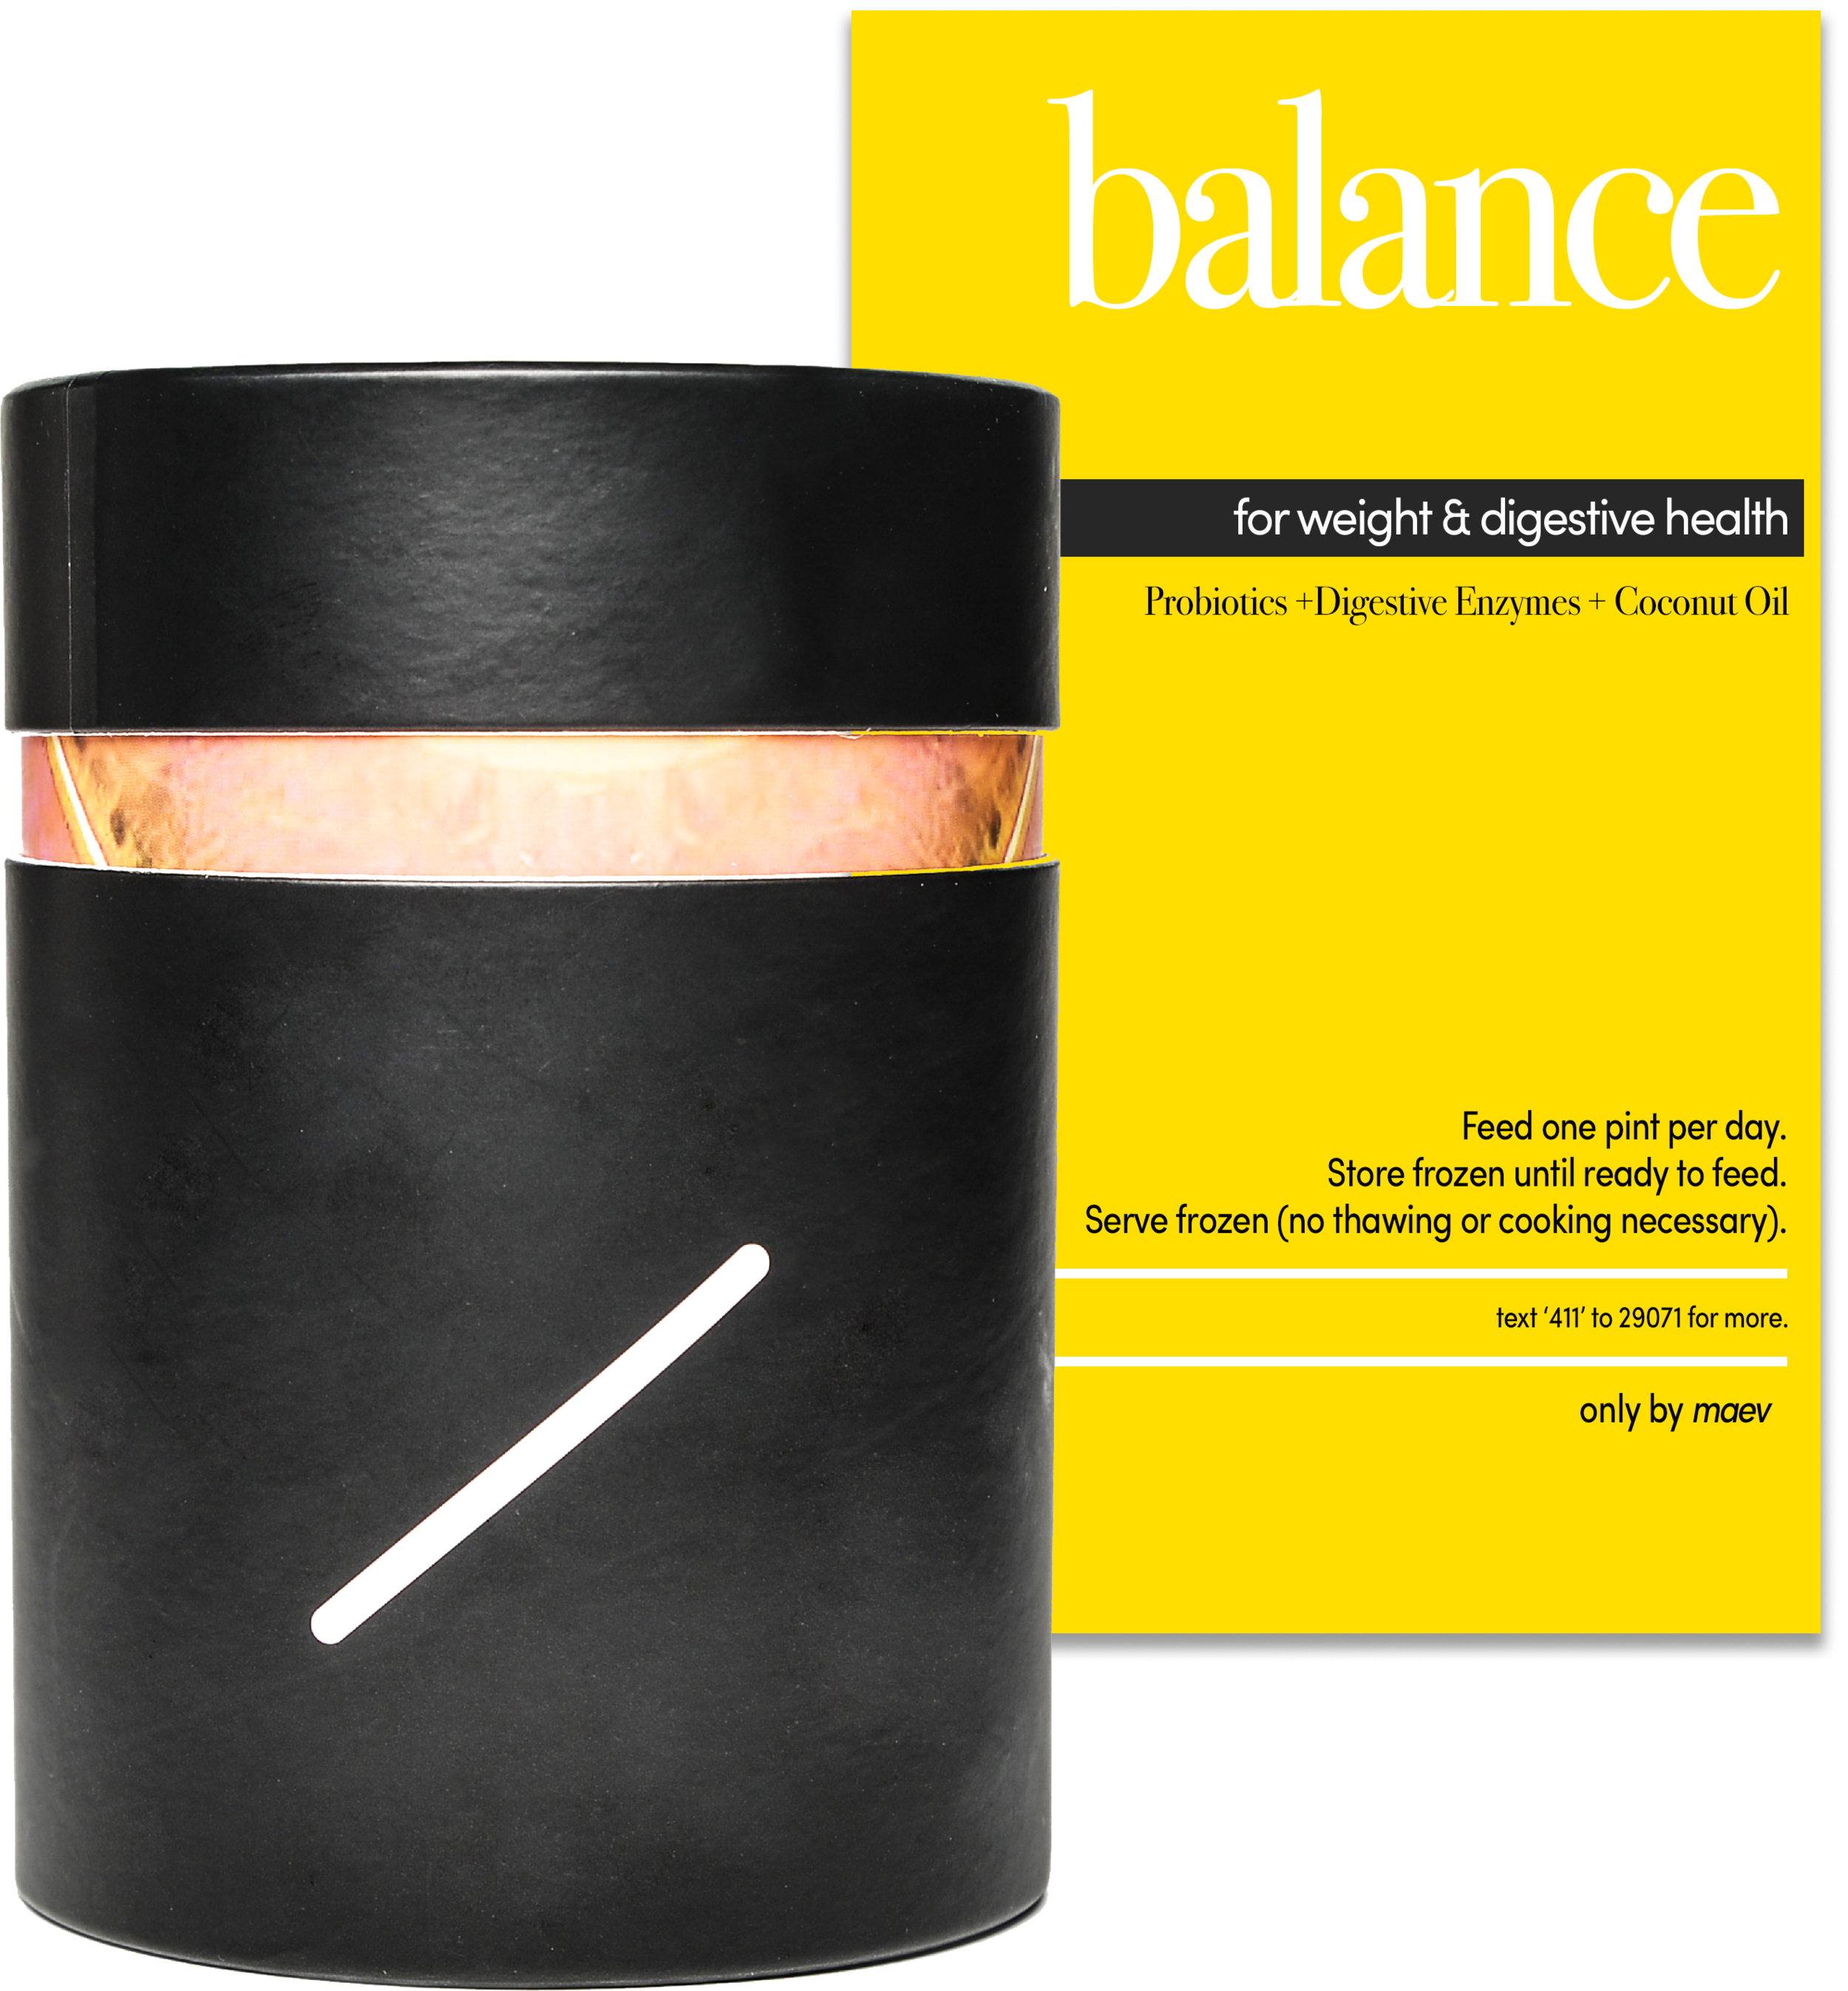 Balance: for Weight & Digestion